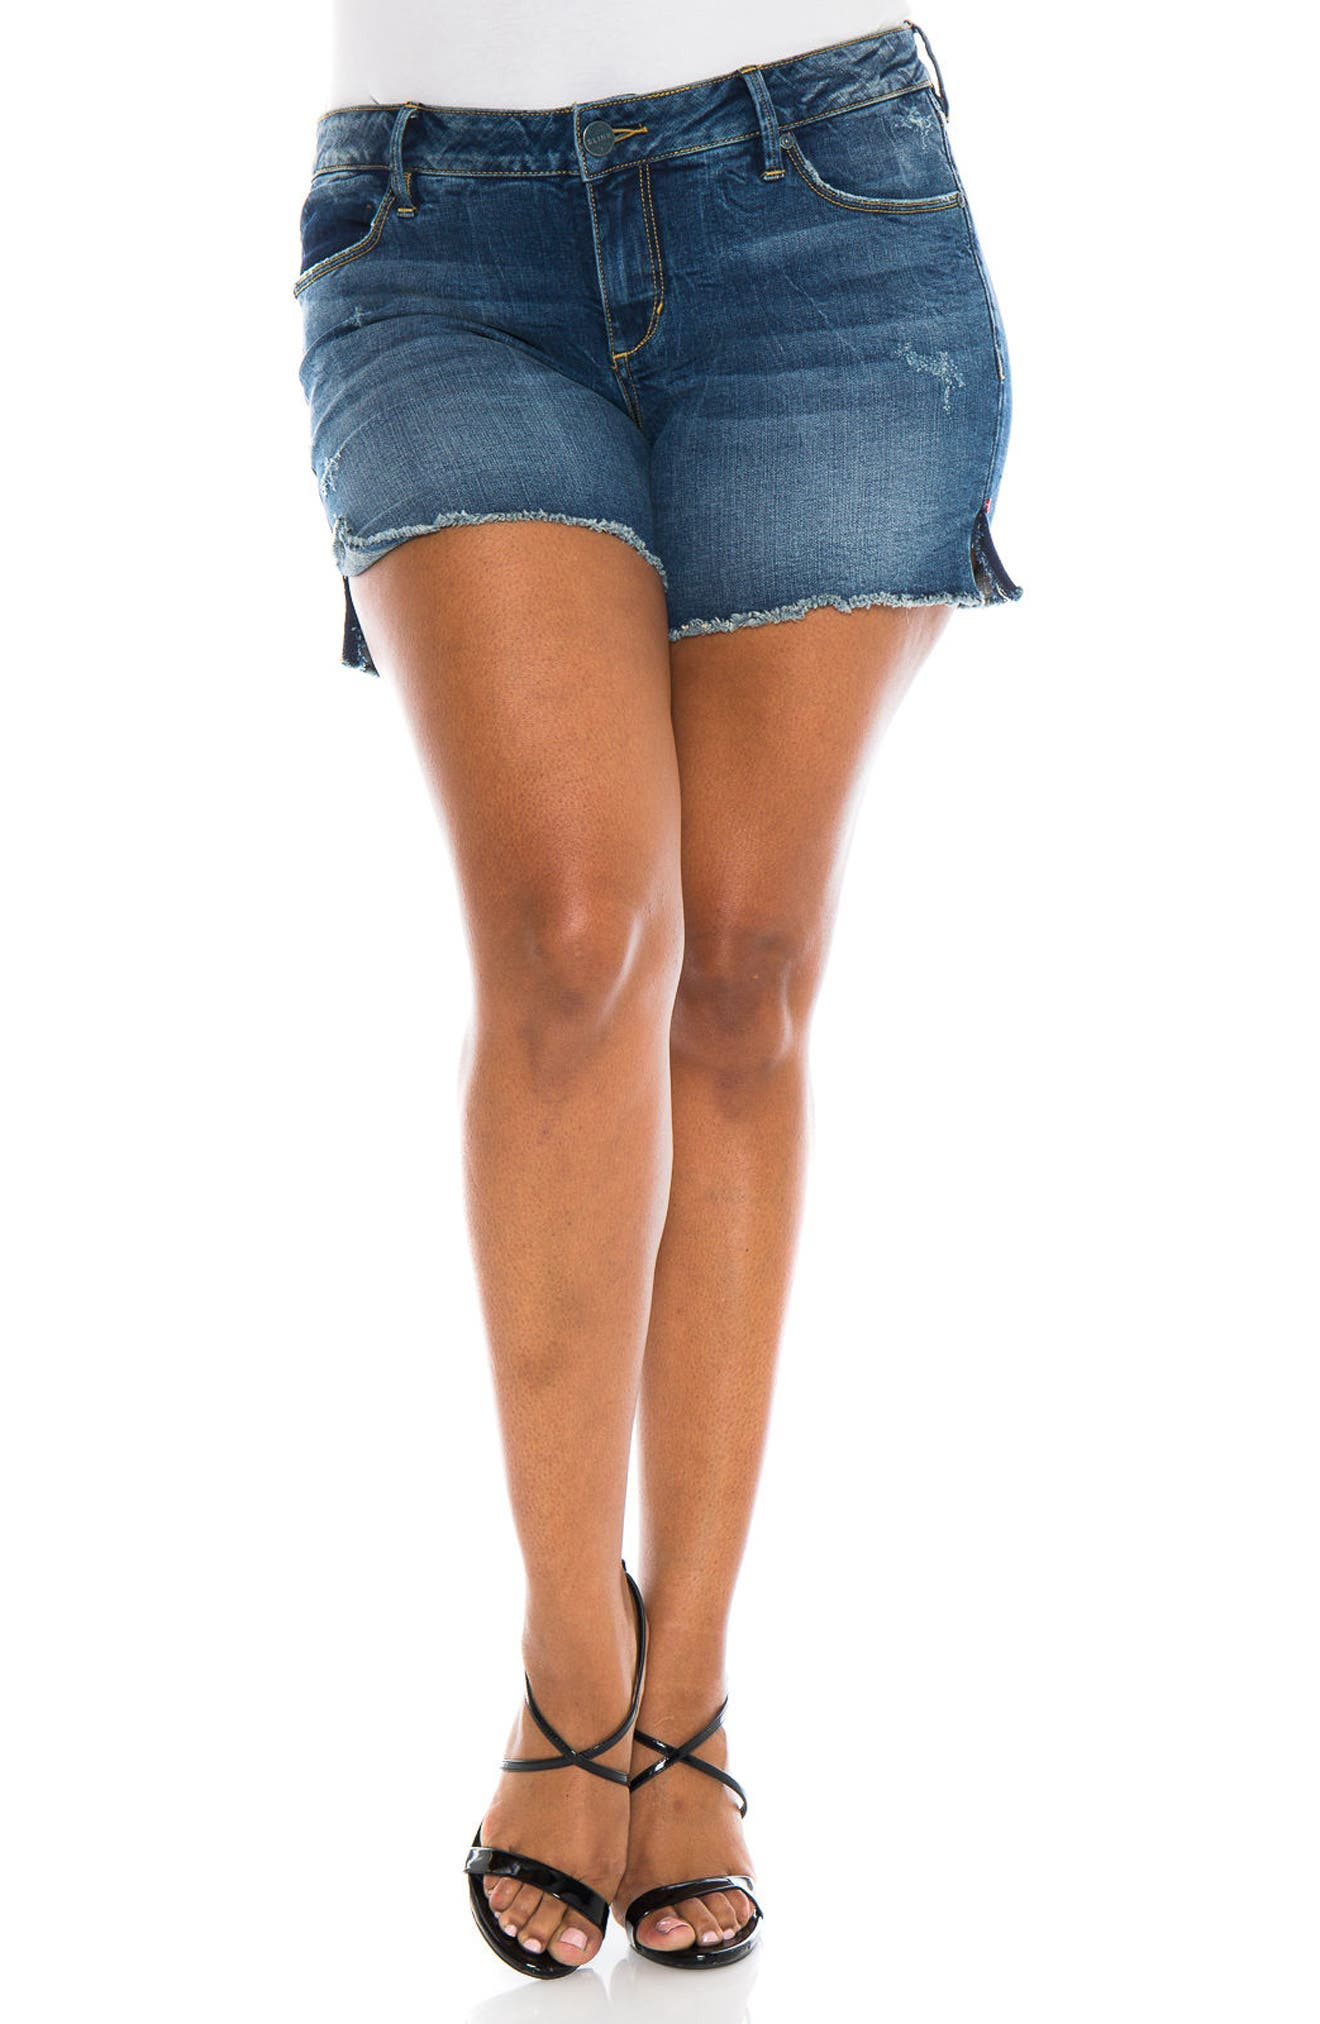 Alternate Image 1 Selected - SLINK Jeans Cutoff Denim Shorts (Caralyn) (Plus Size)